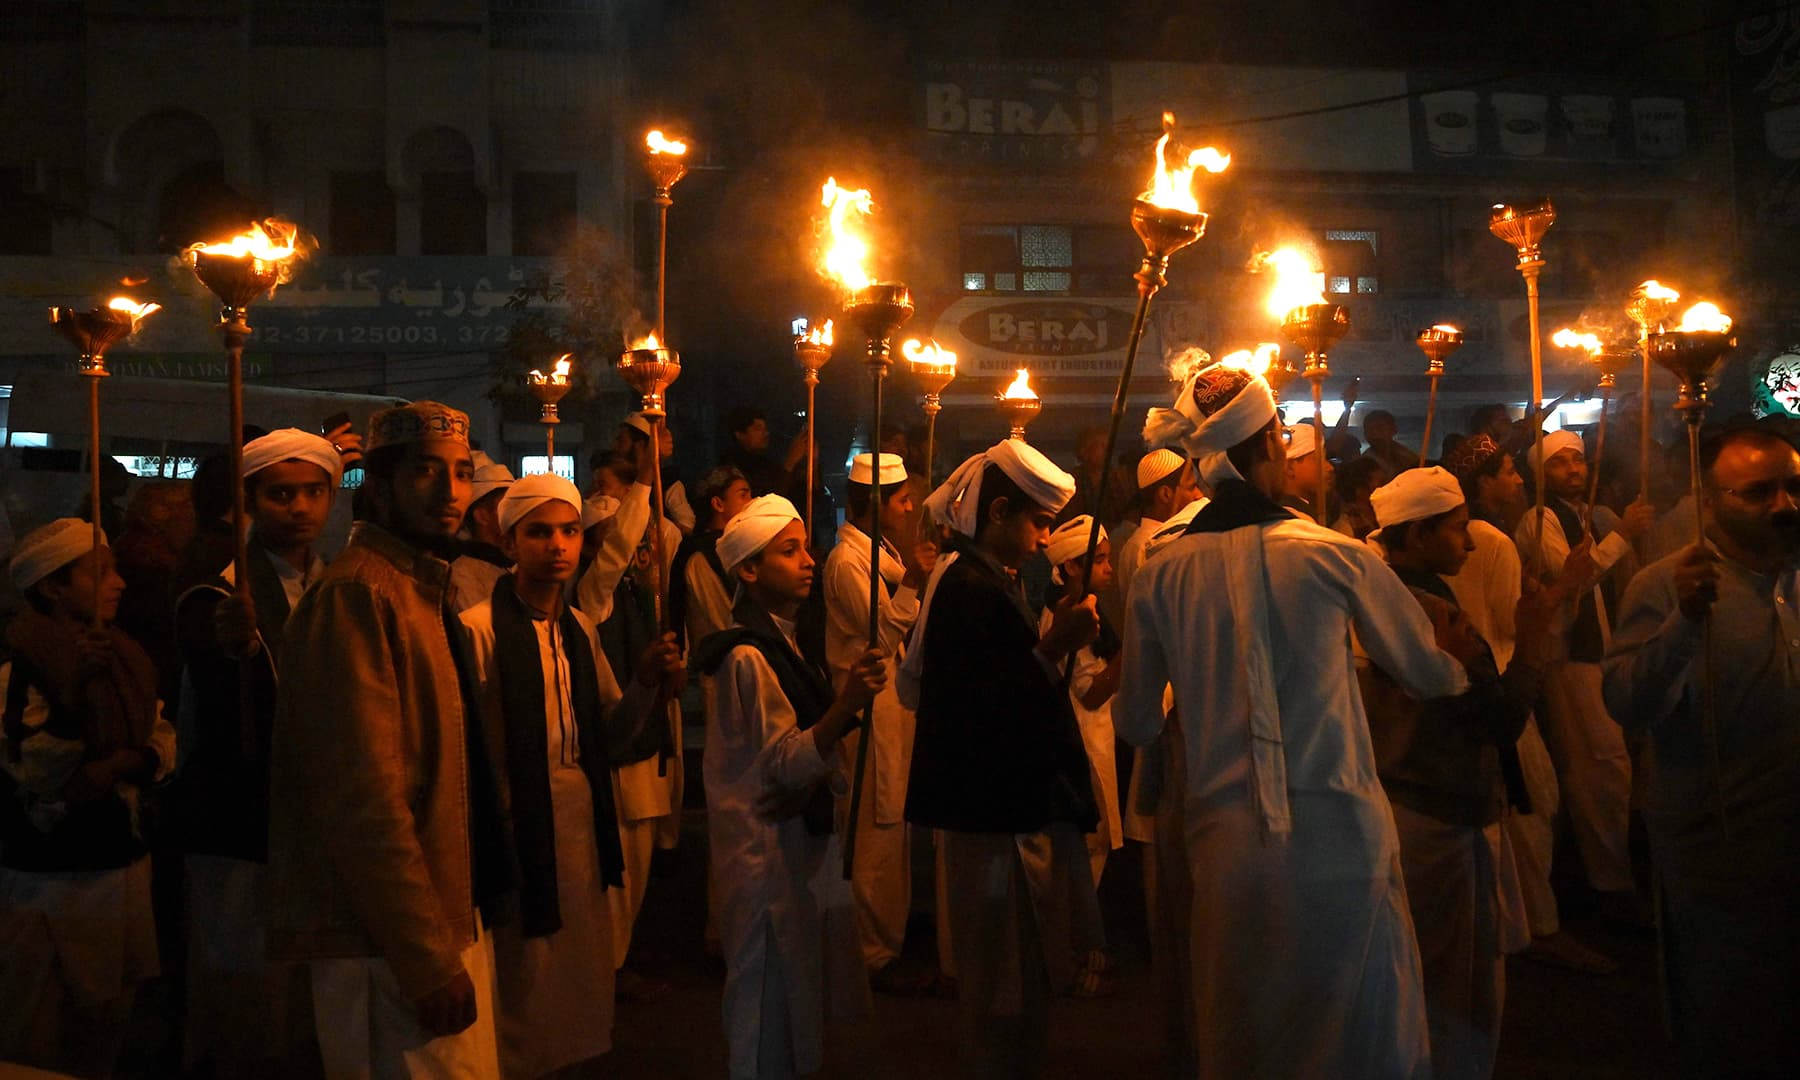 Children hold torches in a rally to mark 12 Rabi-ul-Awwal, in Lahore on Saturday. — AFP